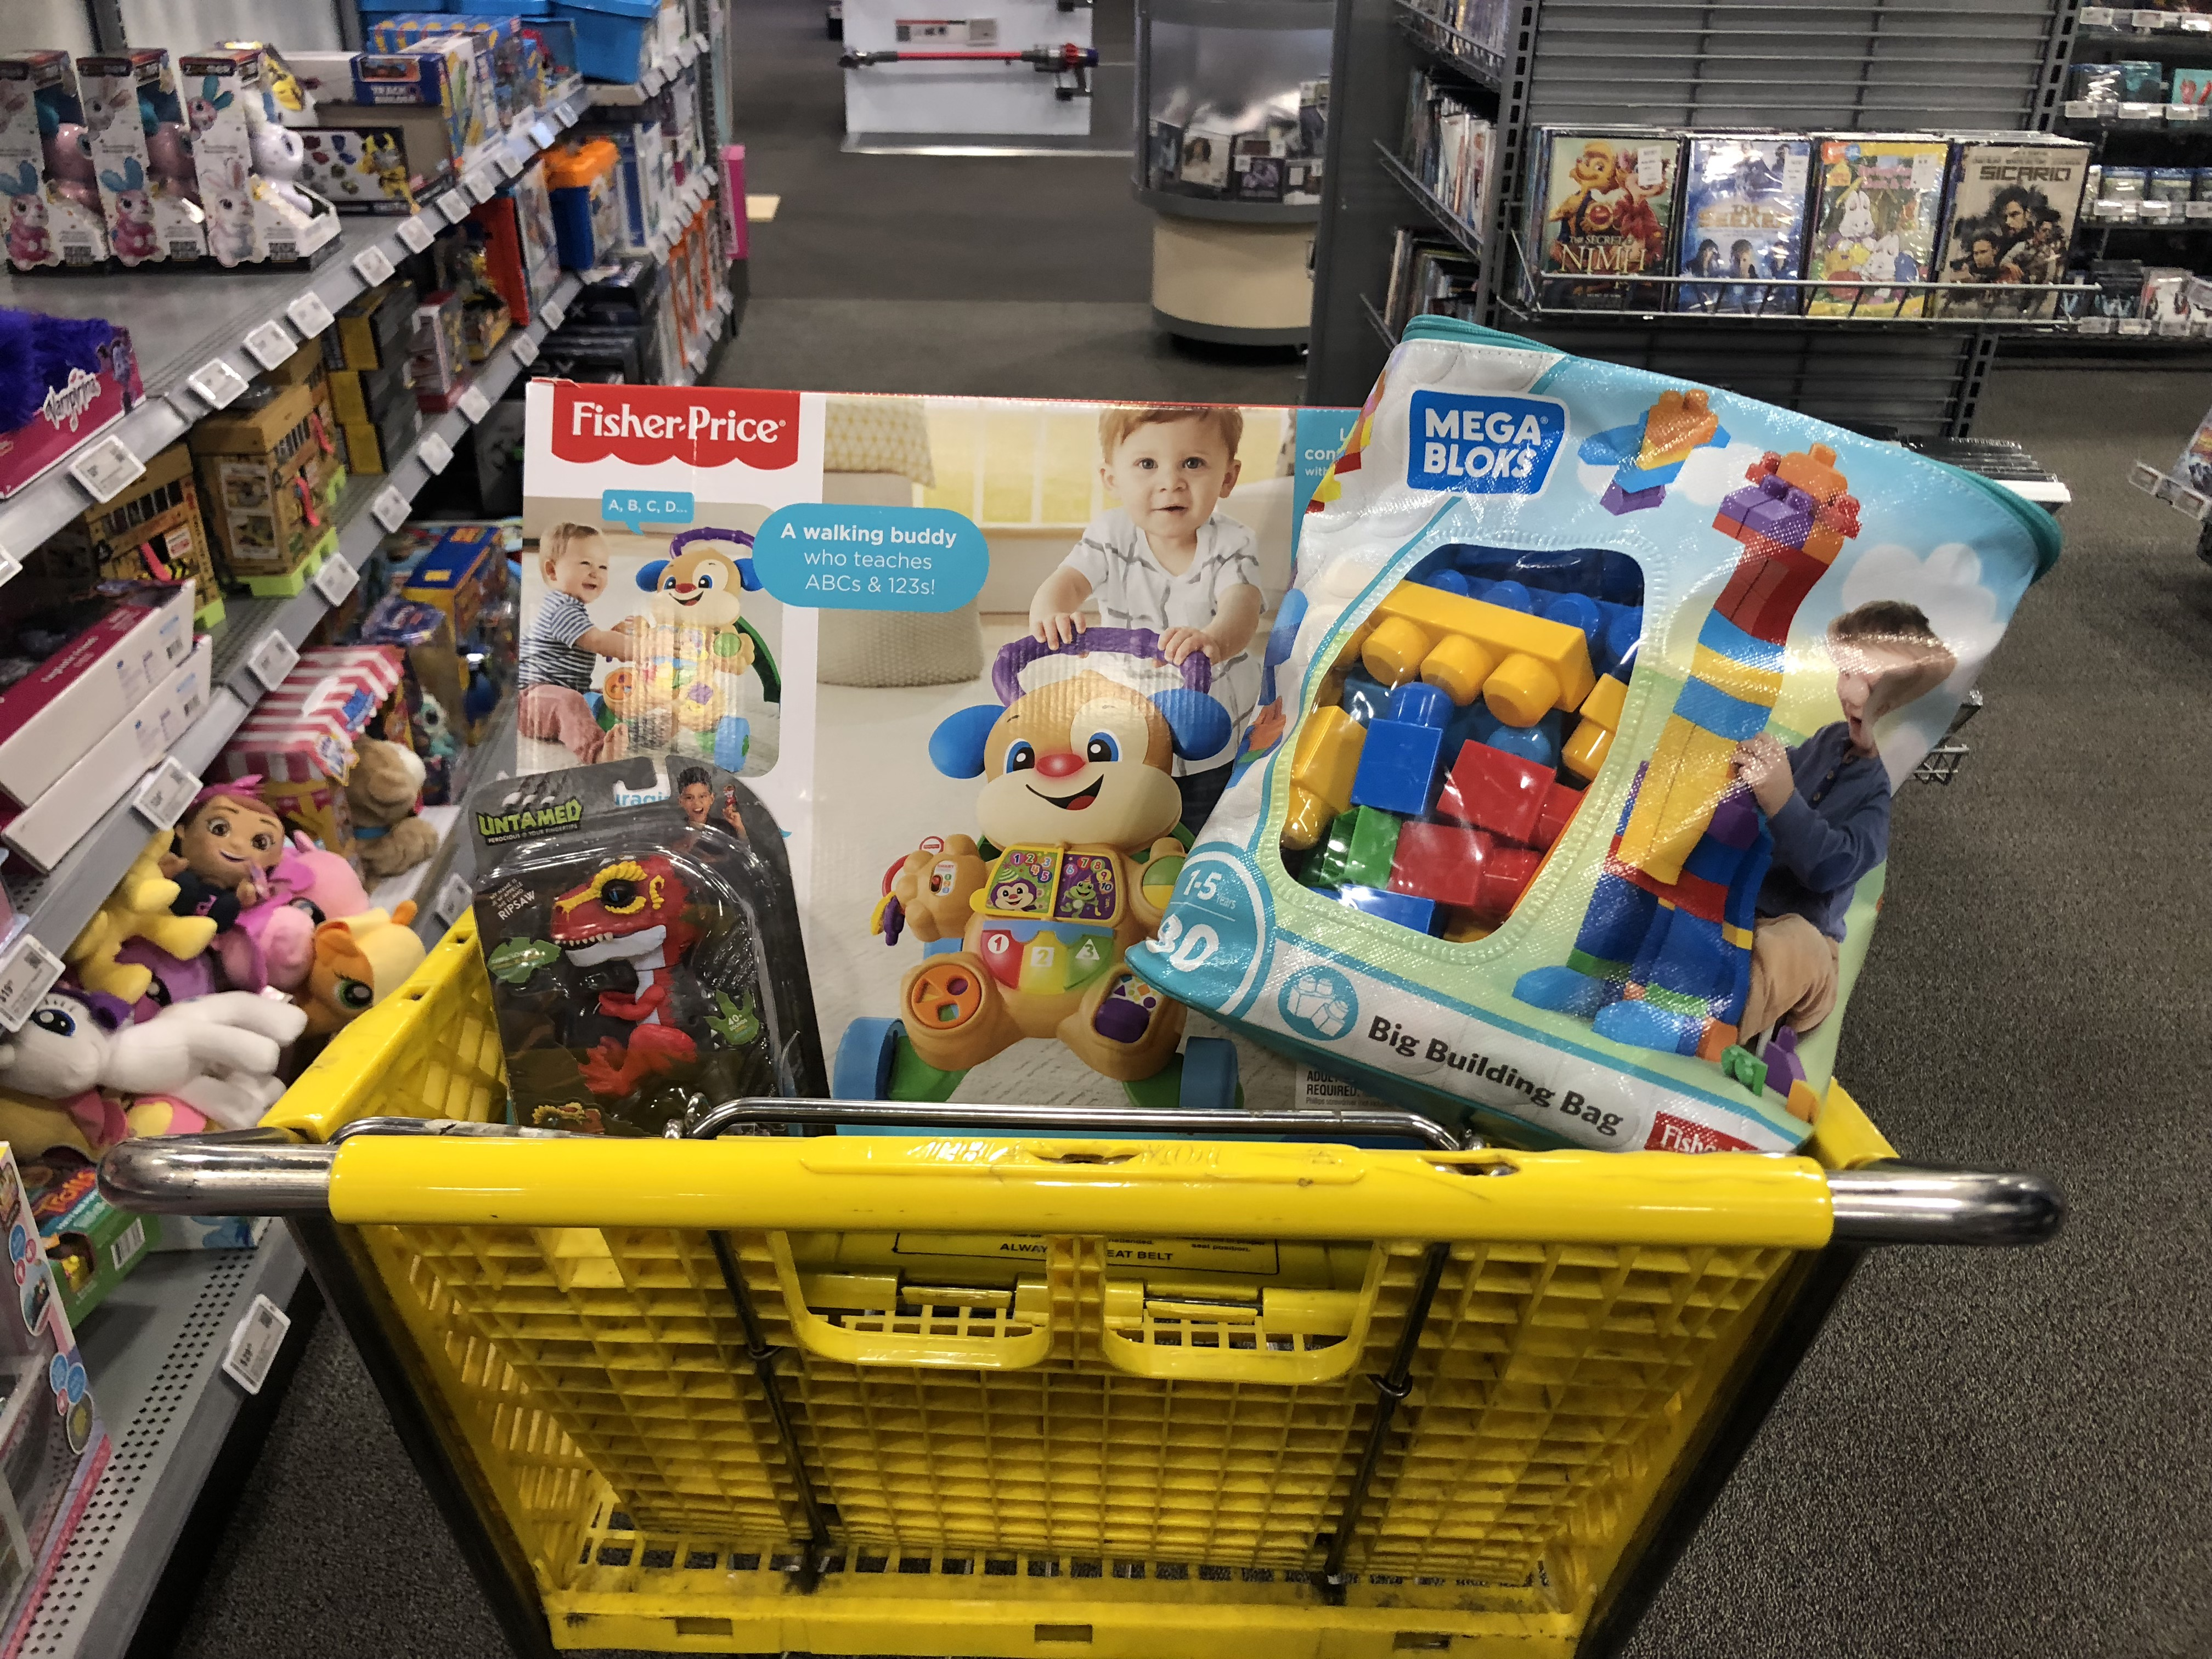 best buy 2018 toy book – Best Buy cart filled with toys